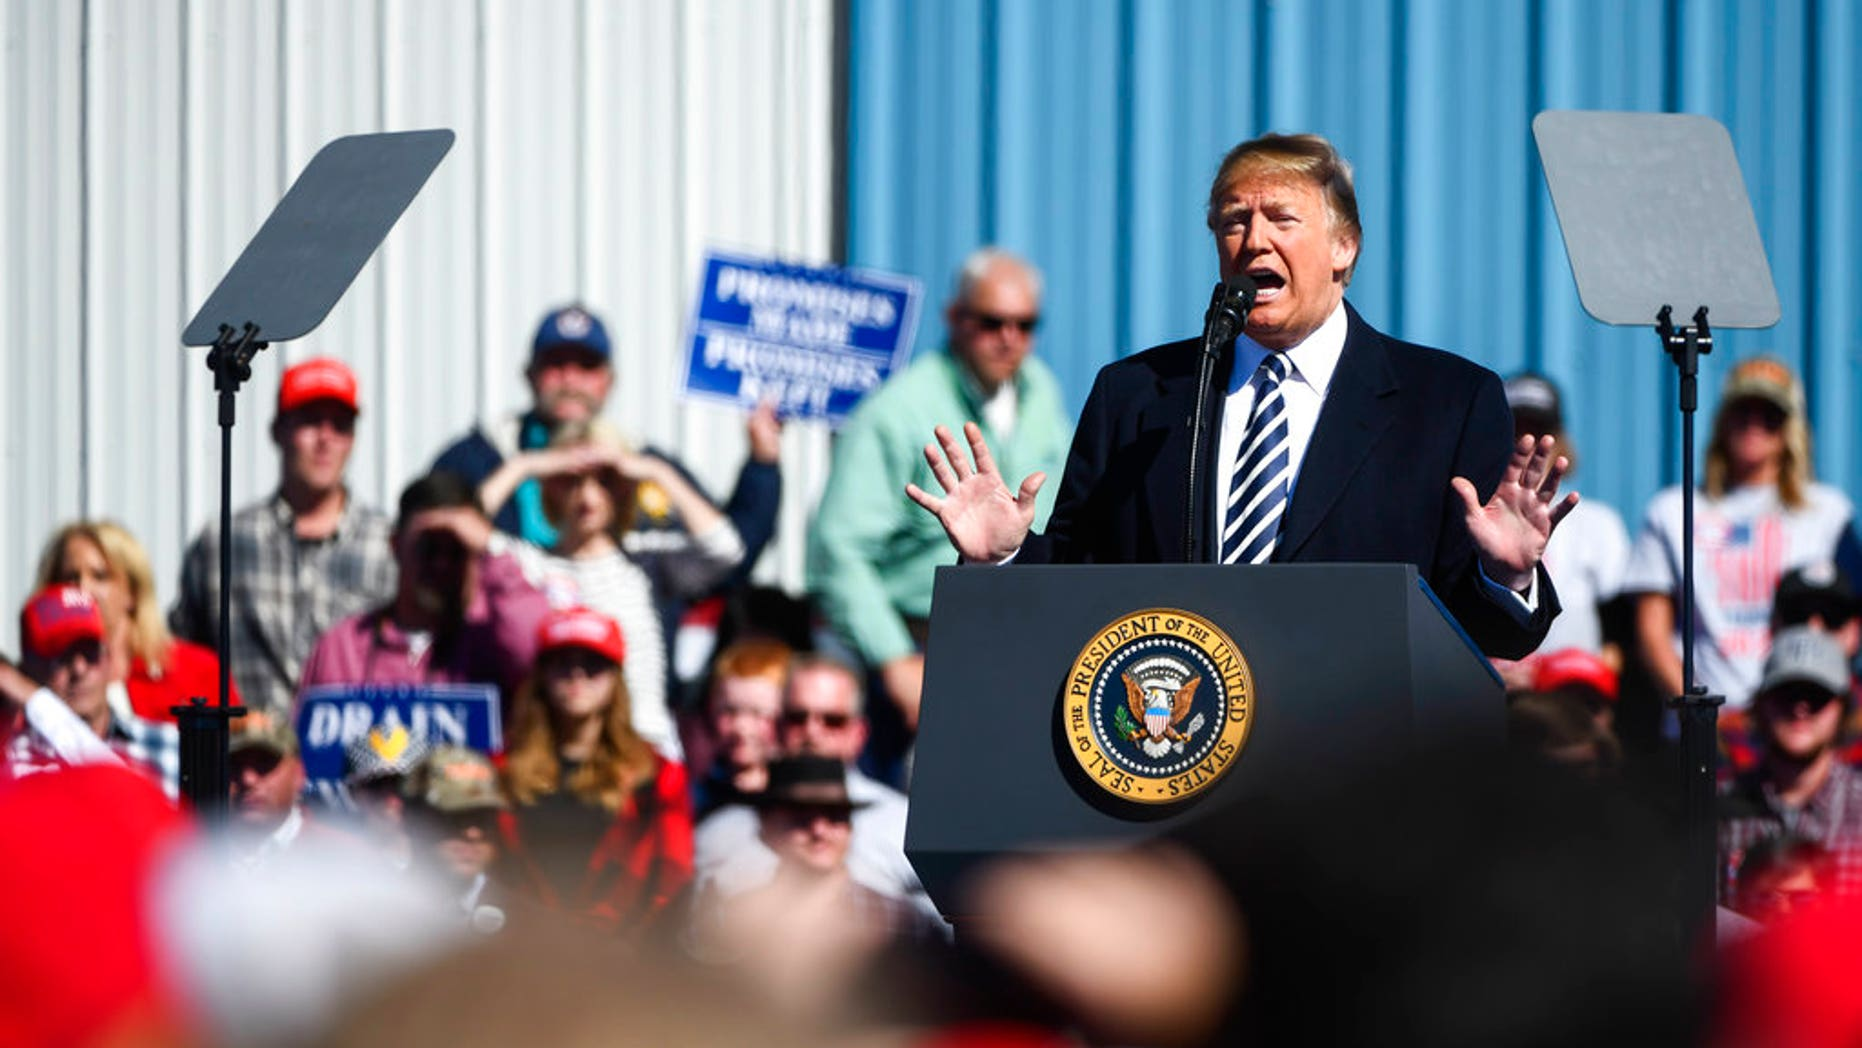 President Donald Trump speaks at a campaign rally in Elko, Nev. (AP Photo/Alex Goodlett)